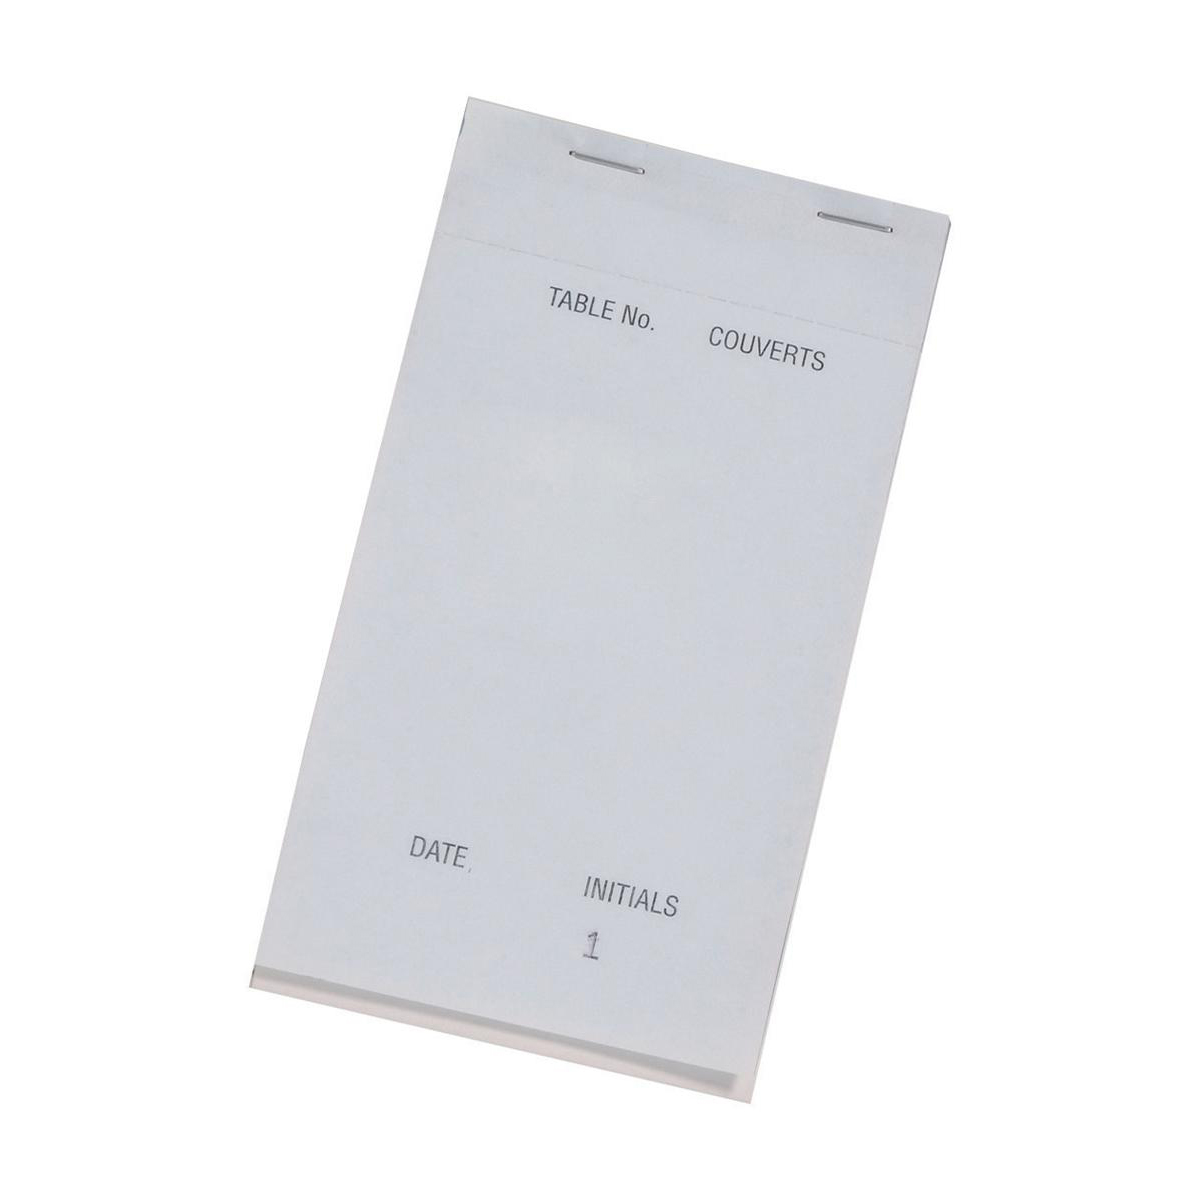 Duplicate Pad Carbonless Perforated Numbered 1-50 95x165mm Pack 50